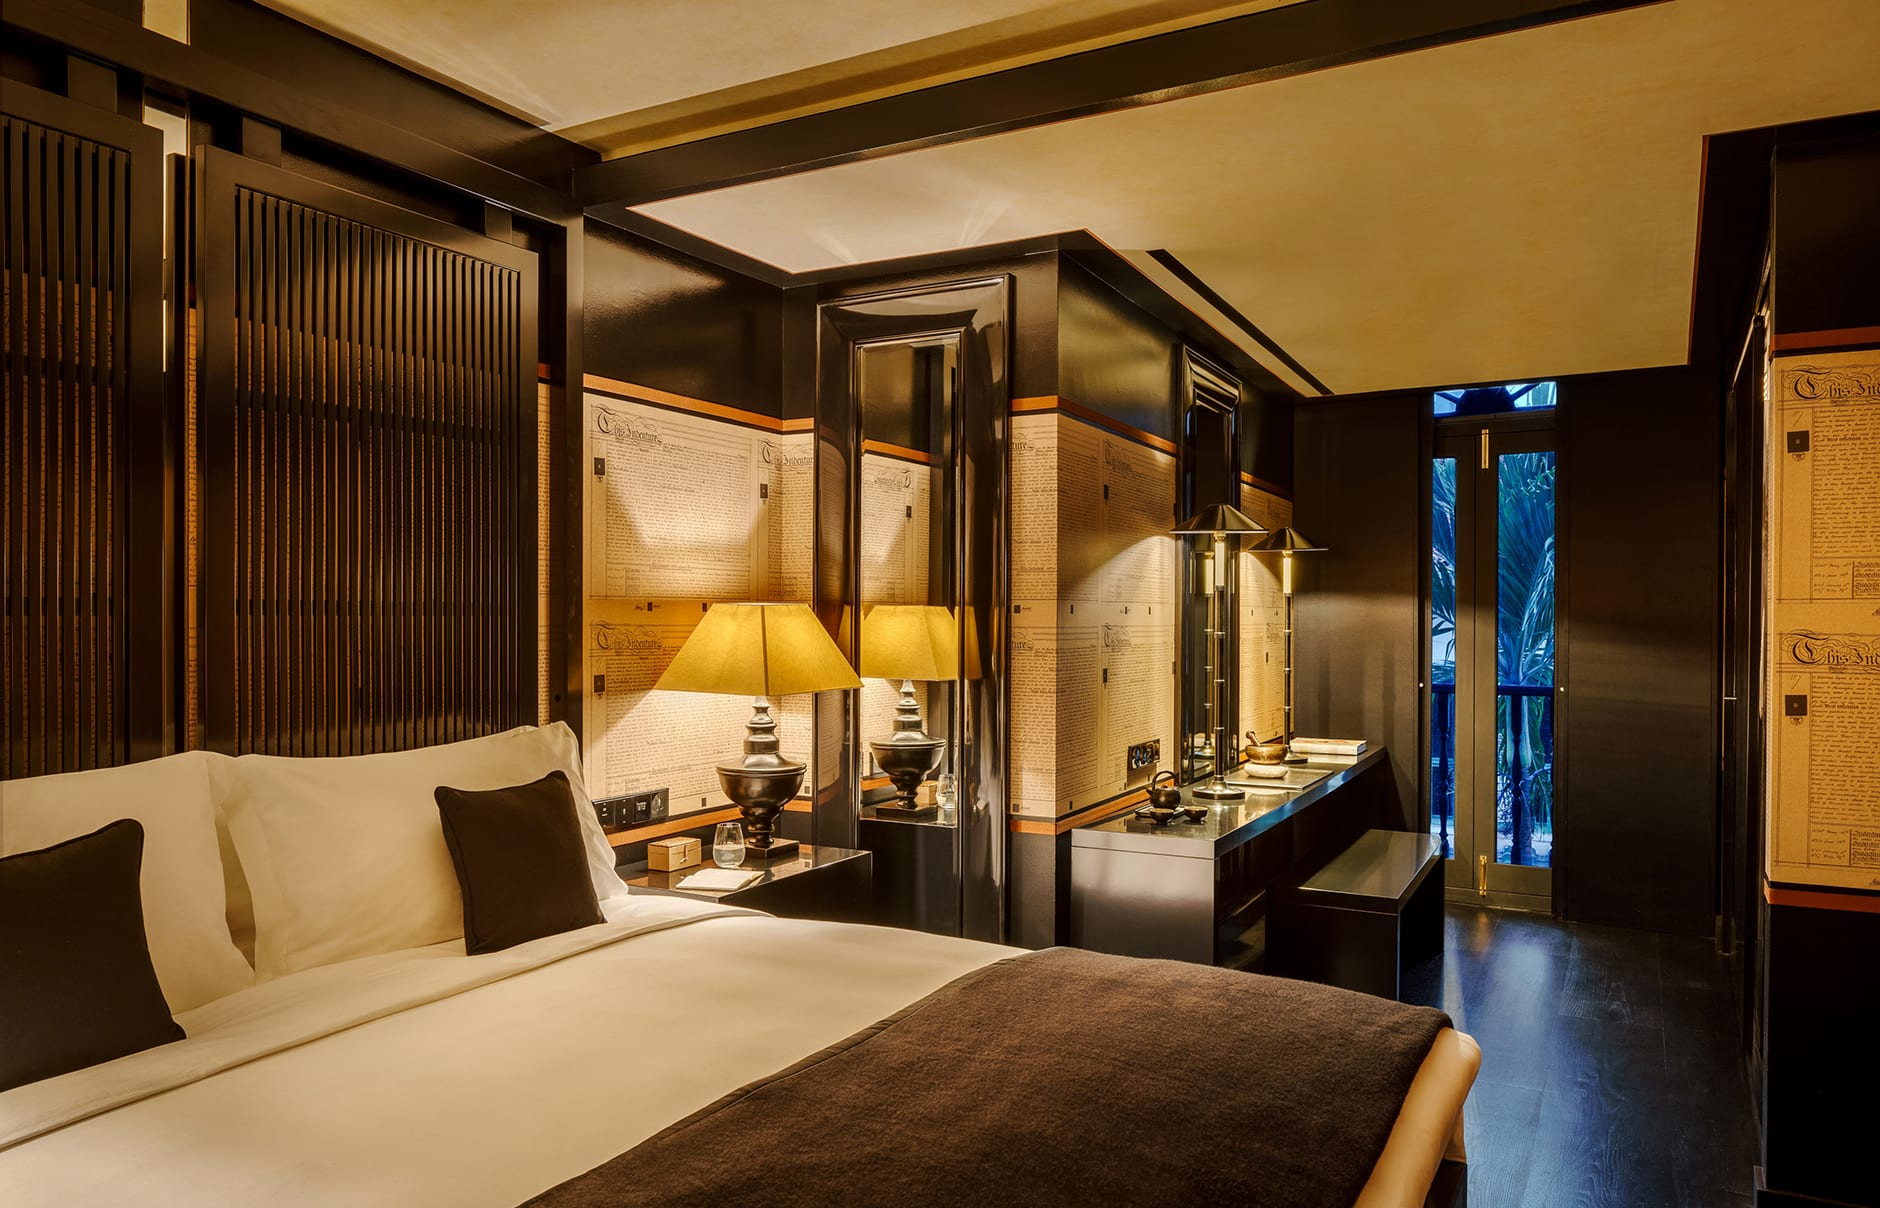 Six Senses Duxton, Singapore, Montgomerie Suite Bedroom. © Six Senses Hotels Resorts Spas